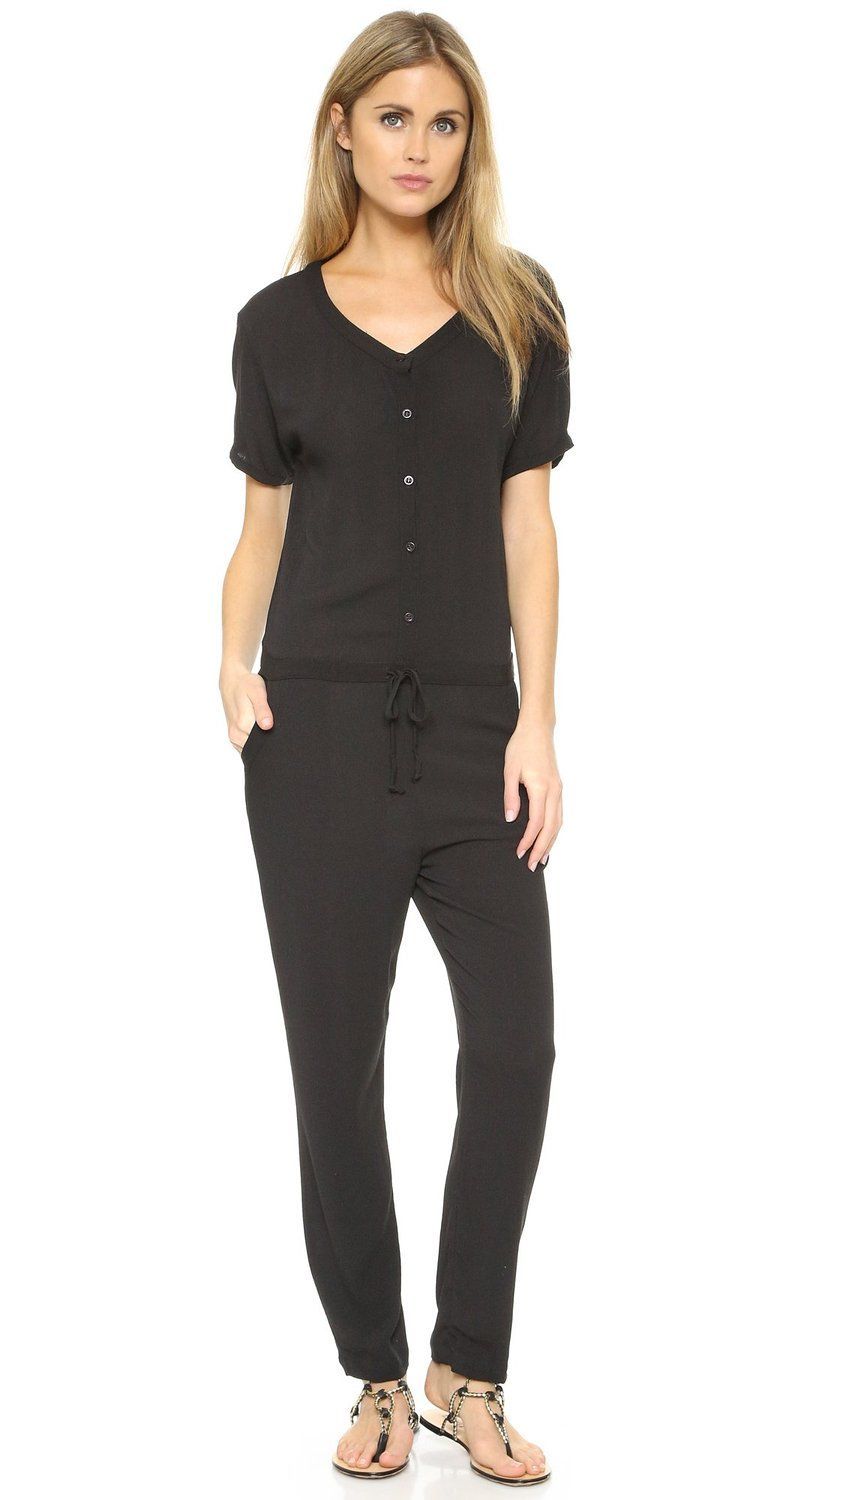 ed6521408a72 Amazon.com  Wildfox Women s Solid Black Travel Jumpsuit  Clothing ...